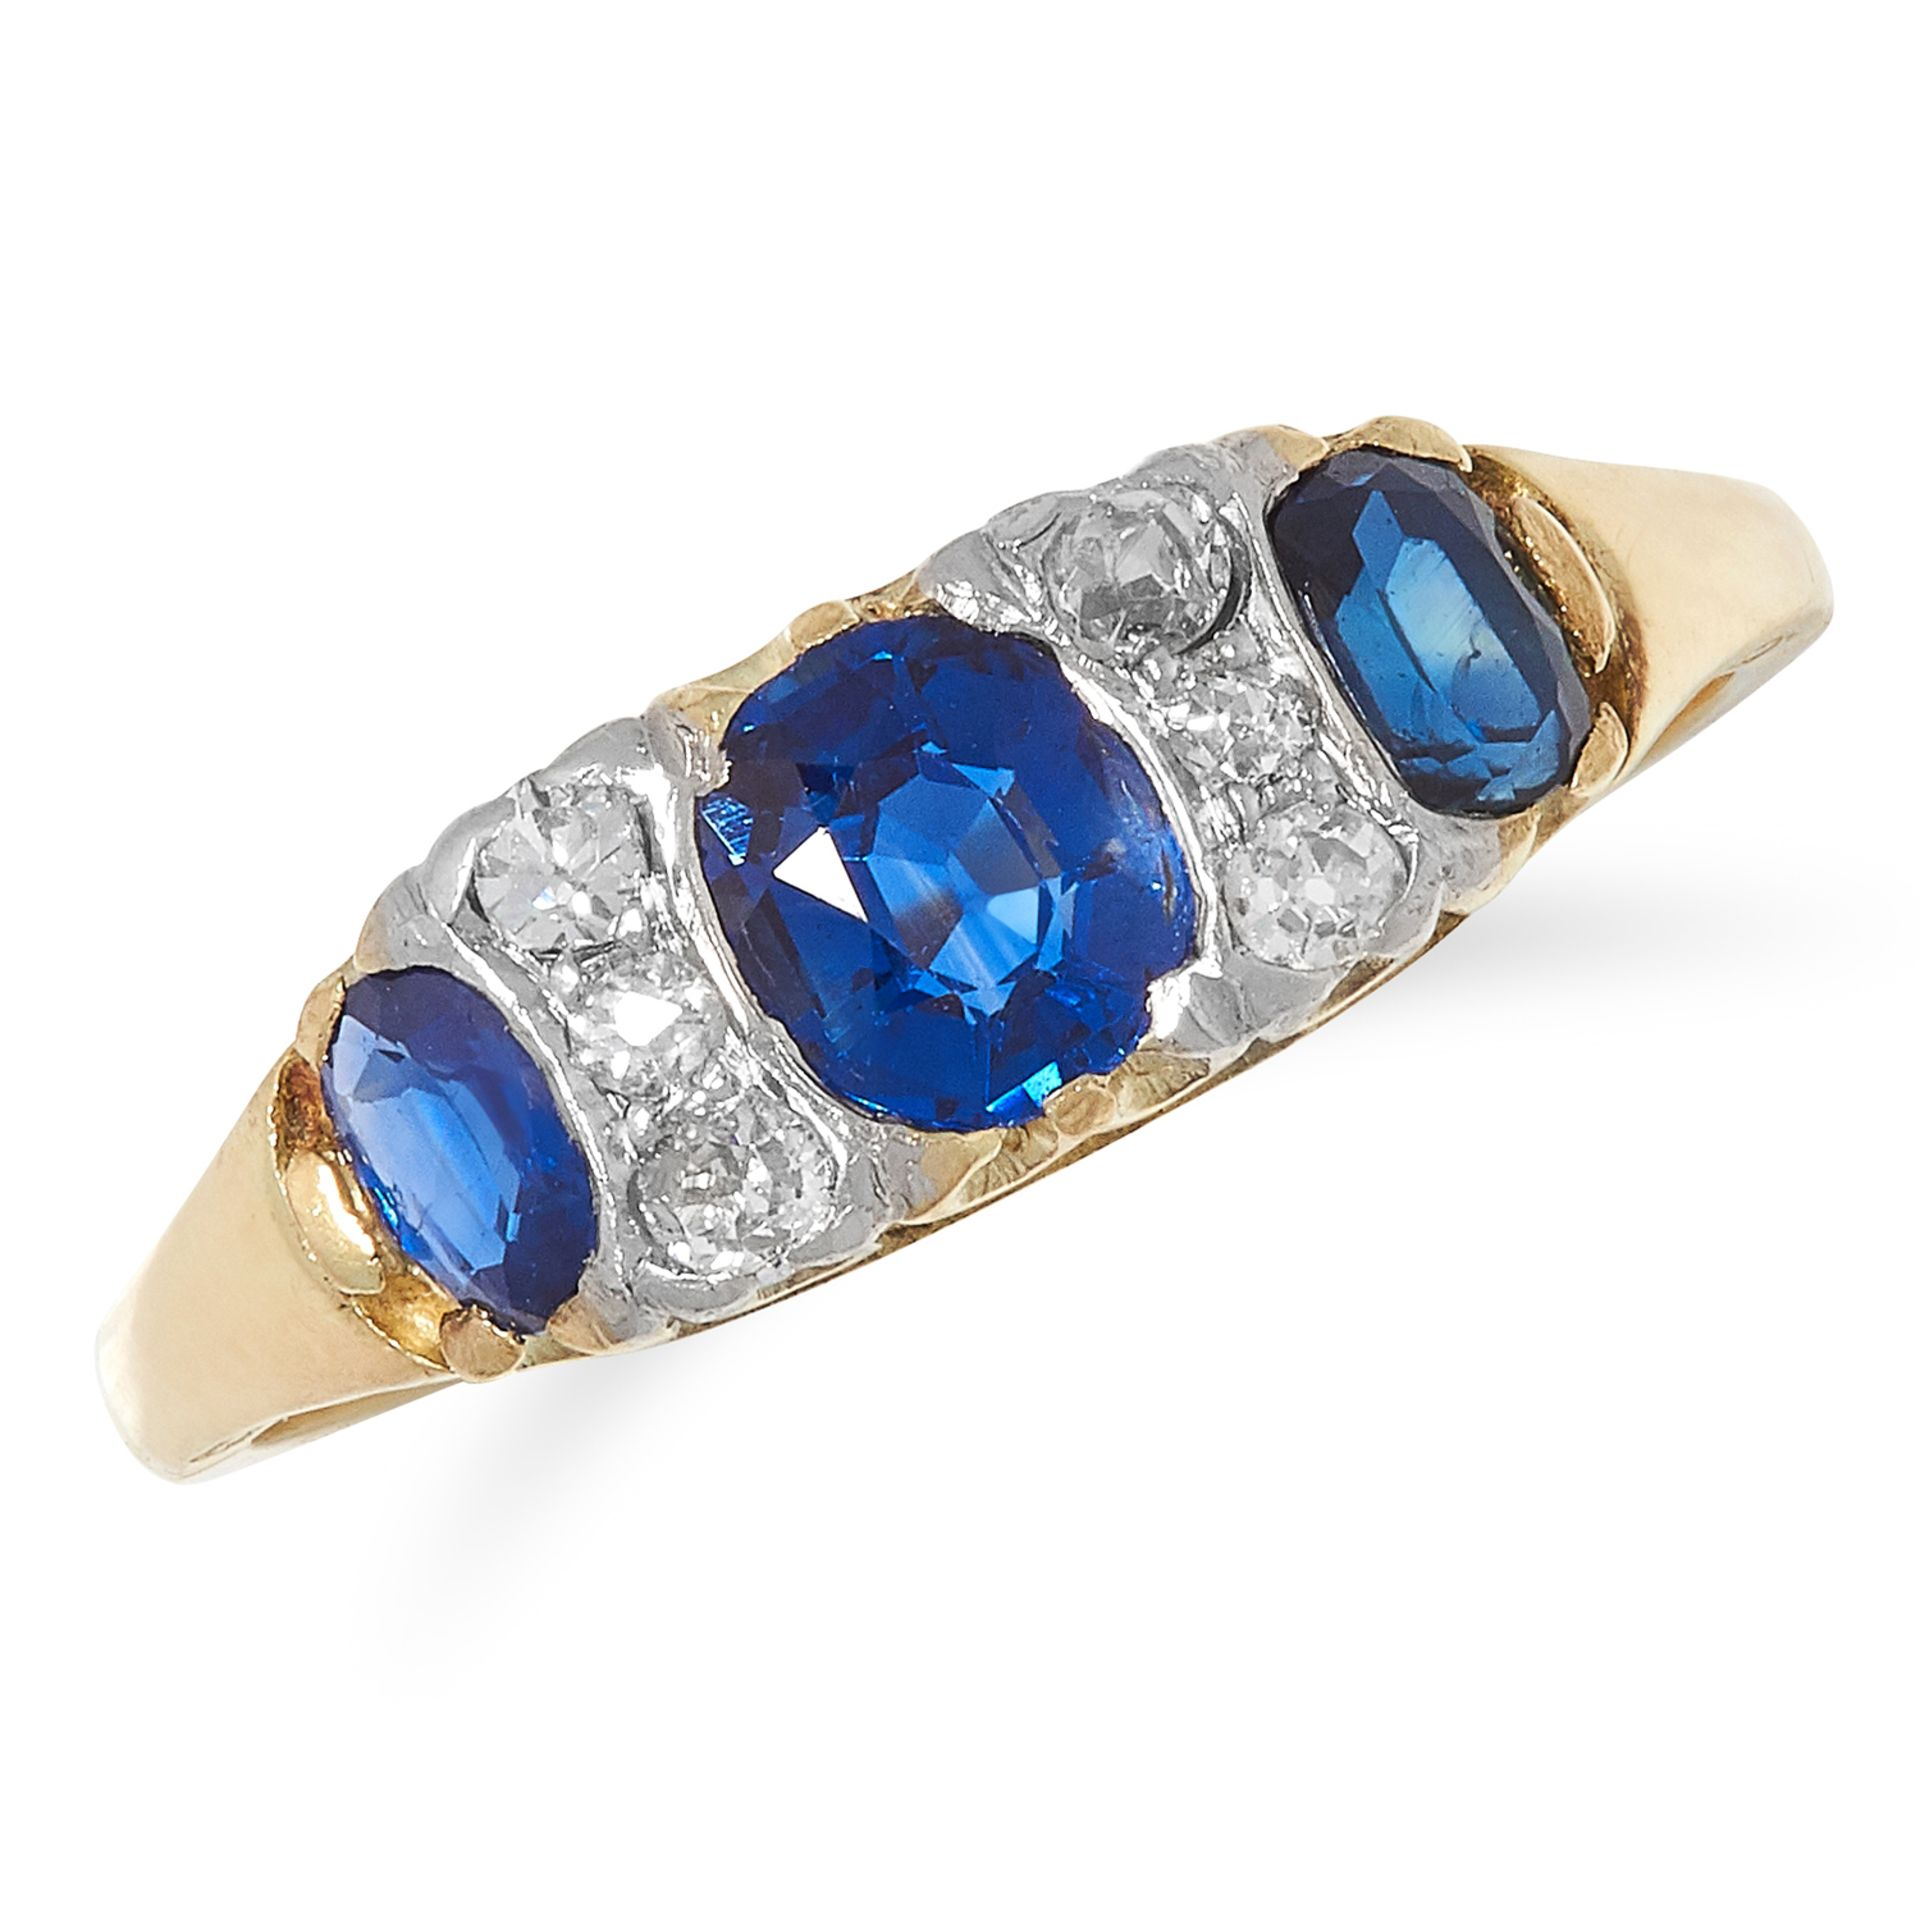 SAPPHIRE AND DIAMOND RING set with alternating oval cut sapphires and round cut diamonds, size M /